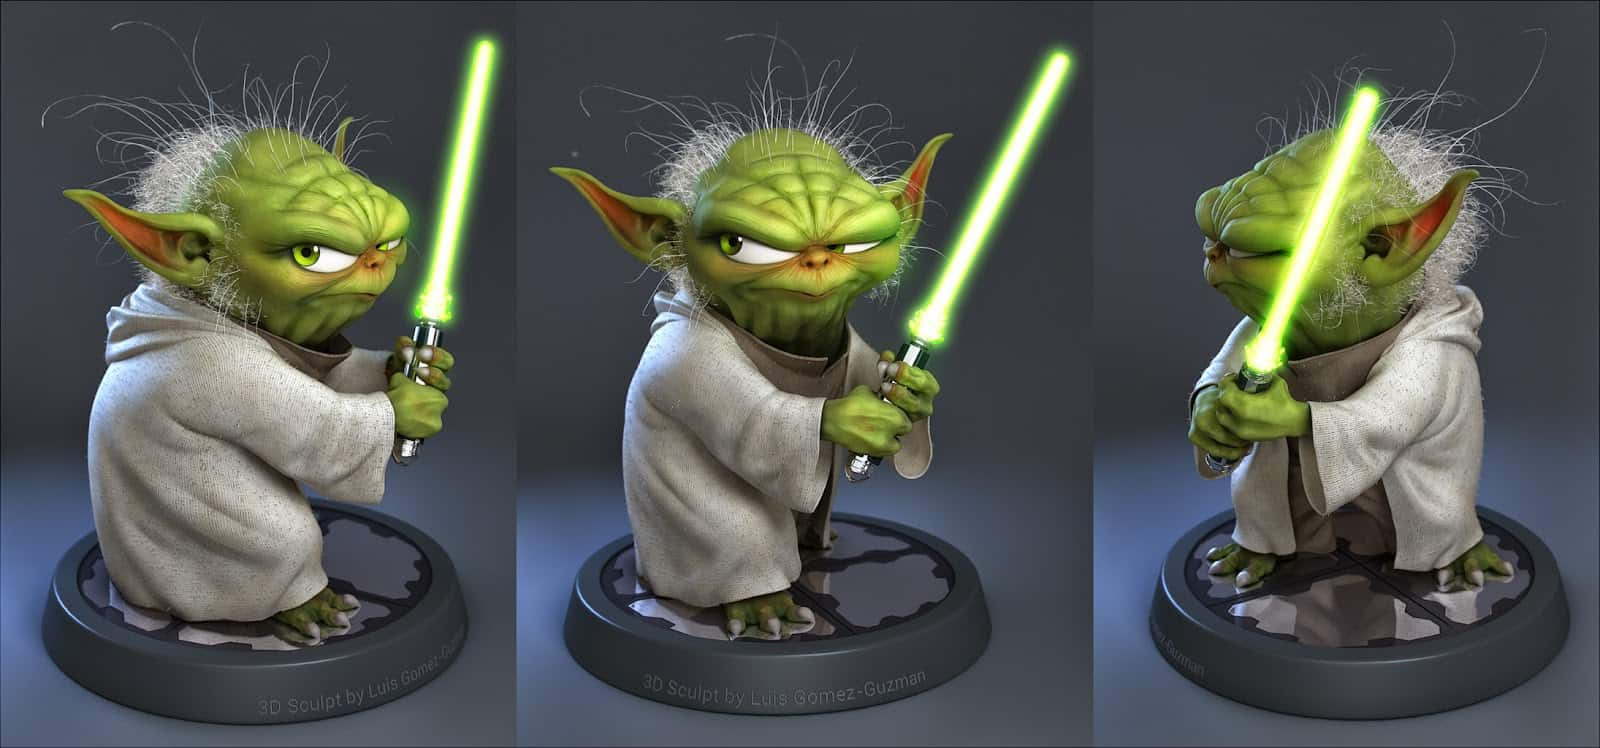 Yoda Character Design : Superheroes and comic character design that will bring out